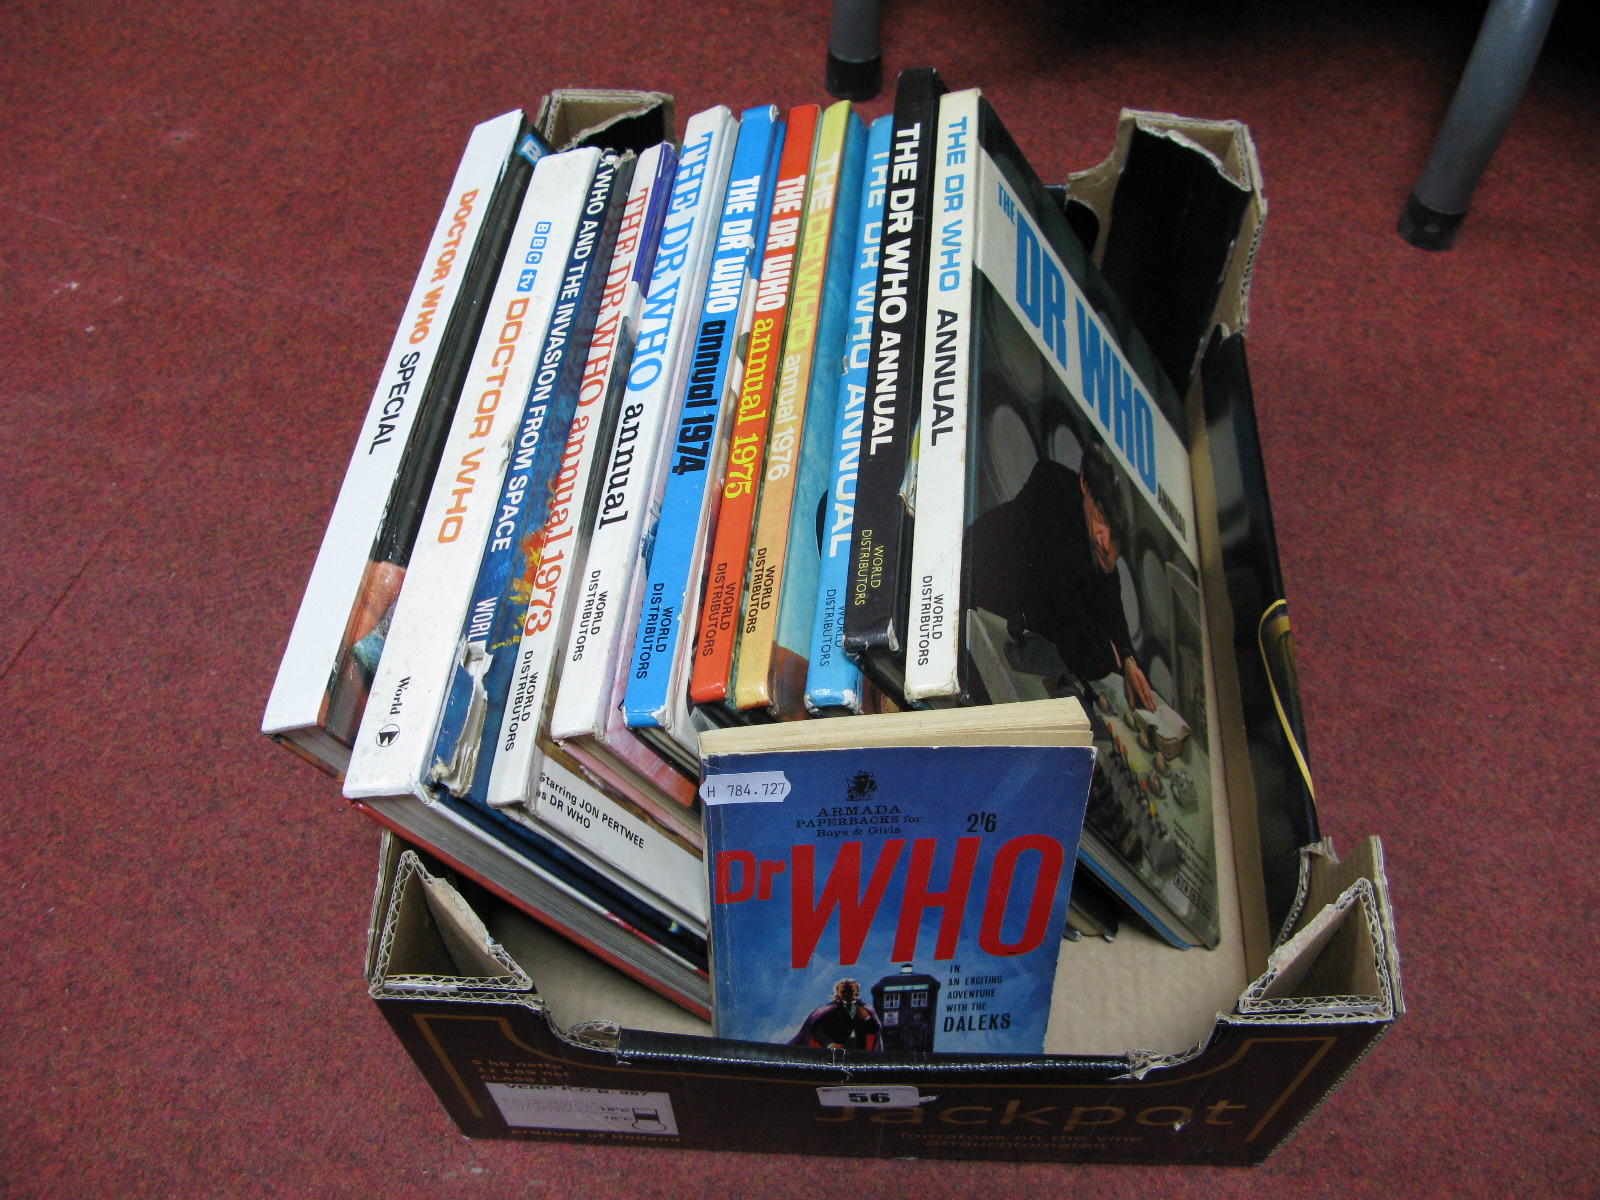 Lot 56 - A Quantity of Dr Who Annuals and Books Including The Dr Who Annual 1966, 1969, 1970, 1971, 1973,